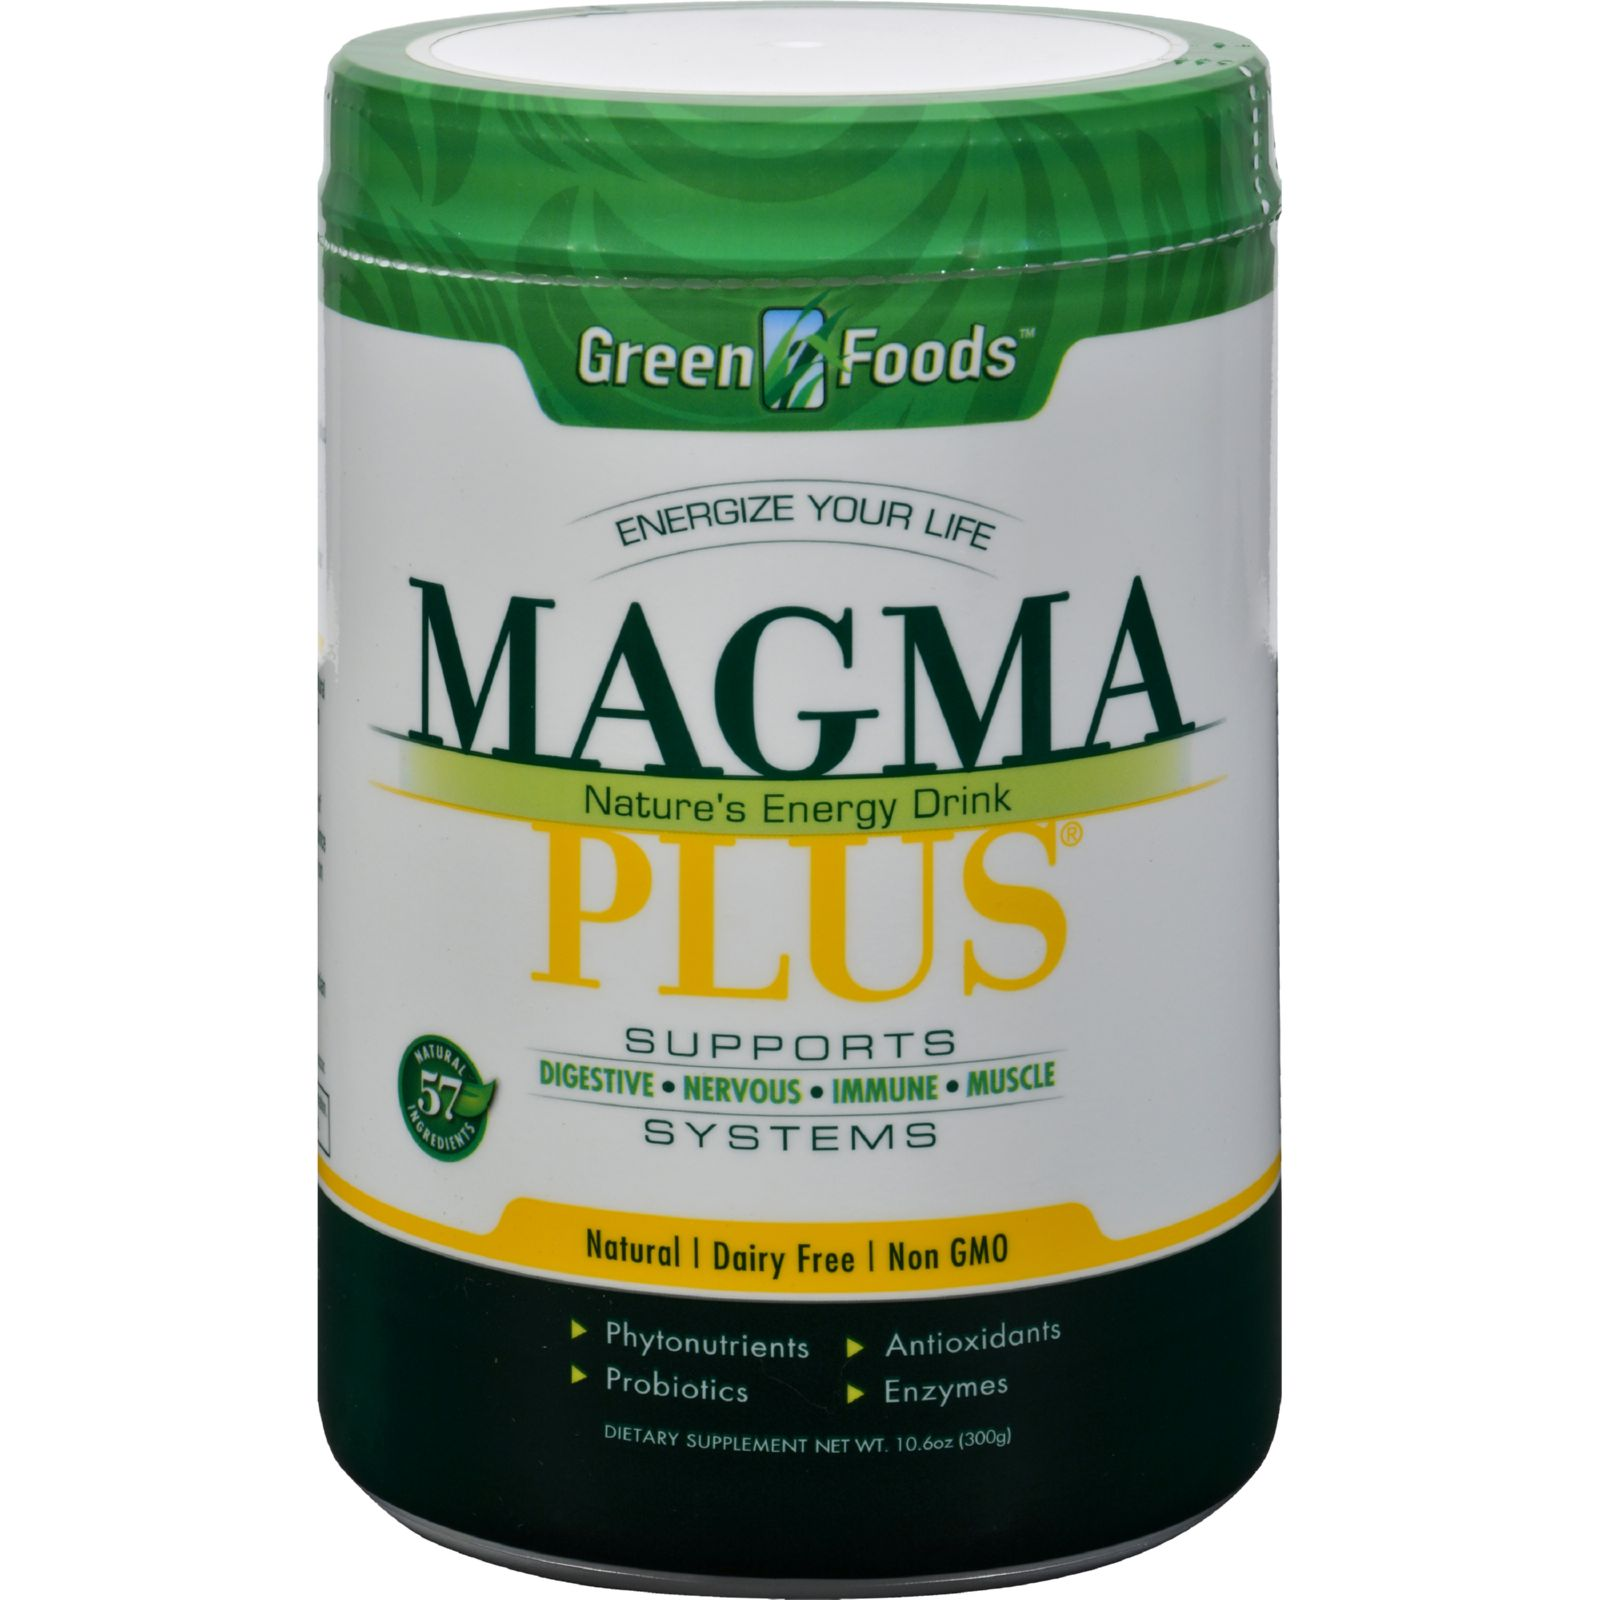 Green Foods Green Foods Magma Plus Powdered Barley Grass Juice, Economy Size, 11 oz